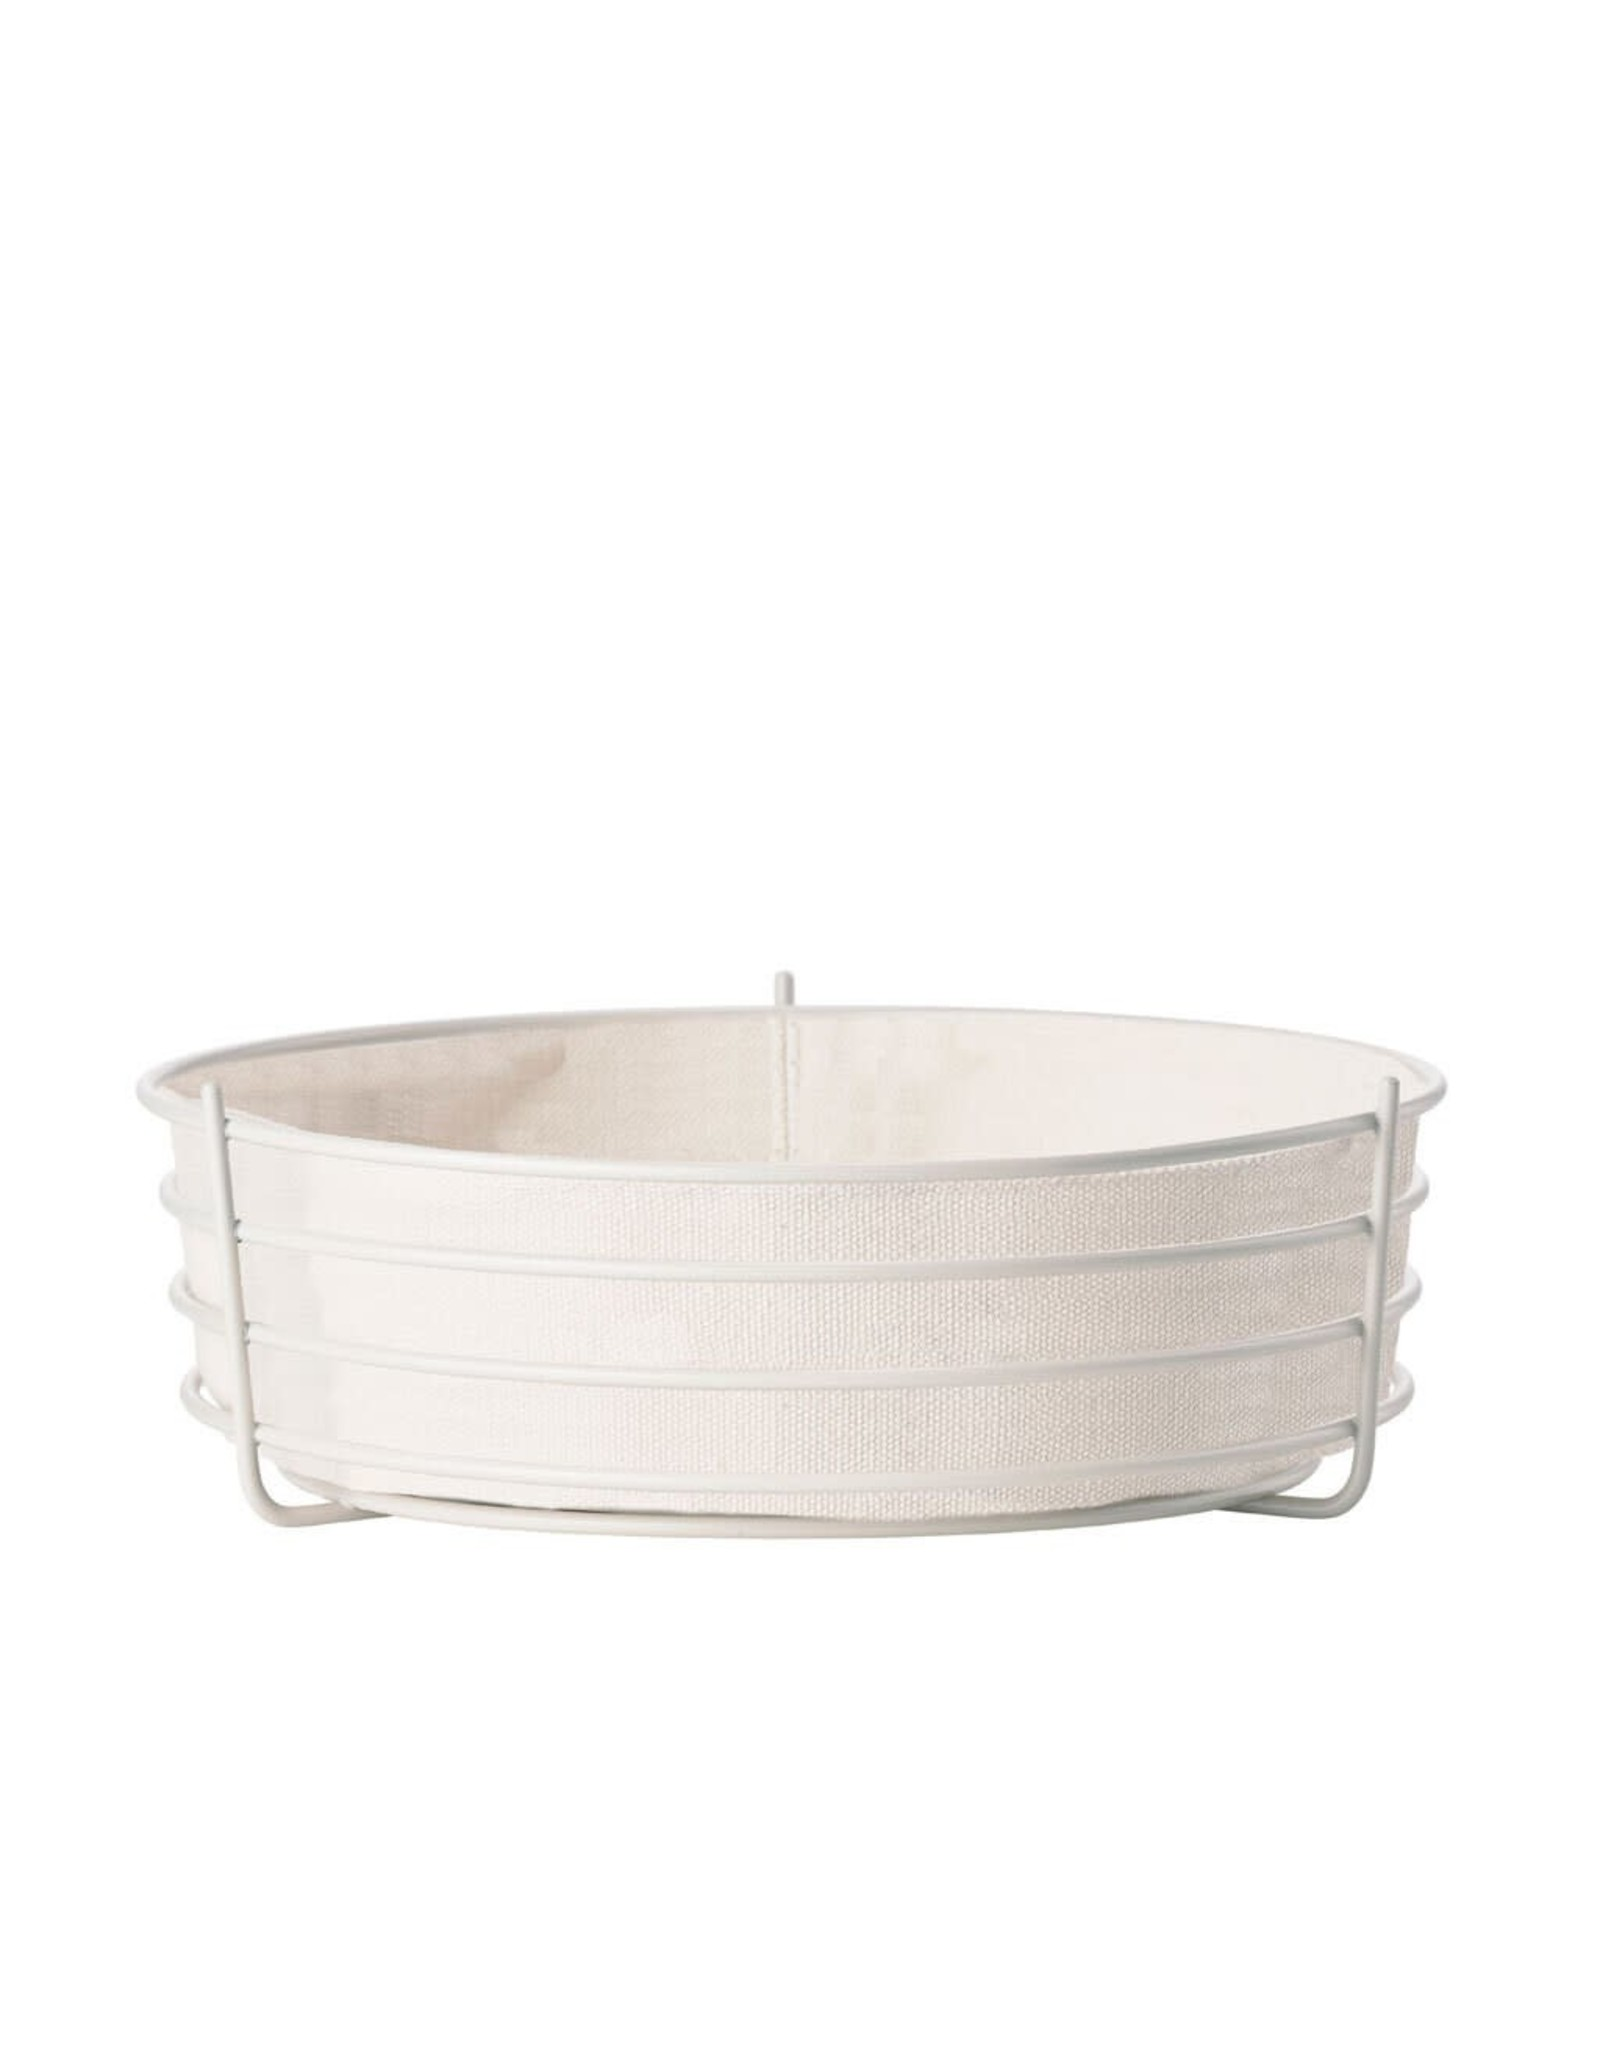 Port-Style BREAD BASKET ROUND METAL WITH LINING 24CM